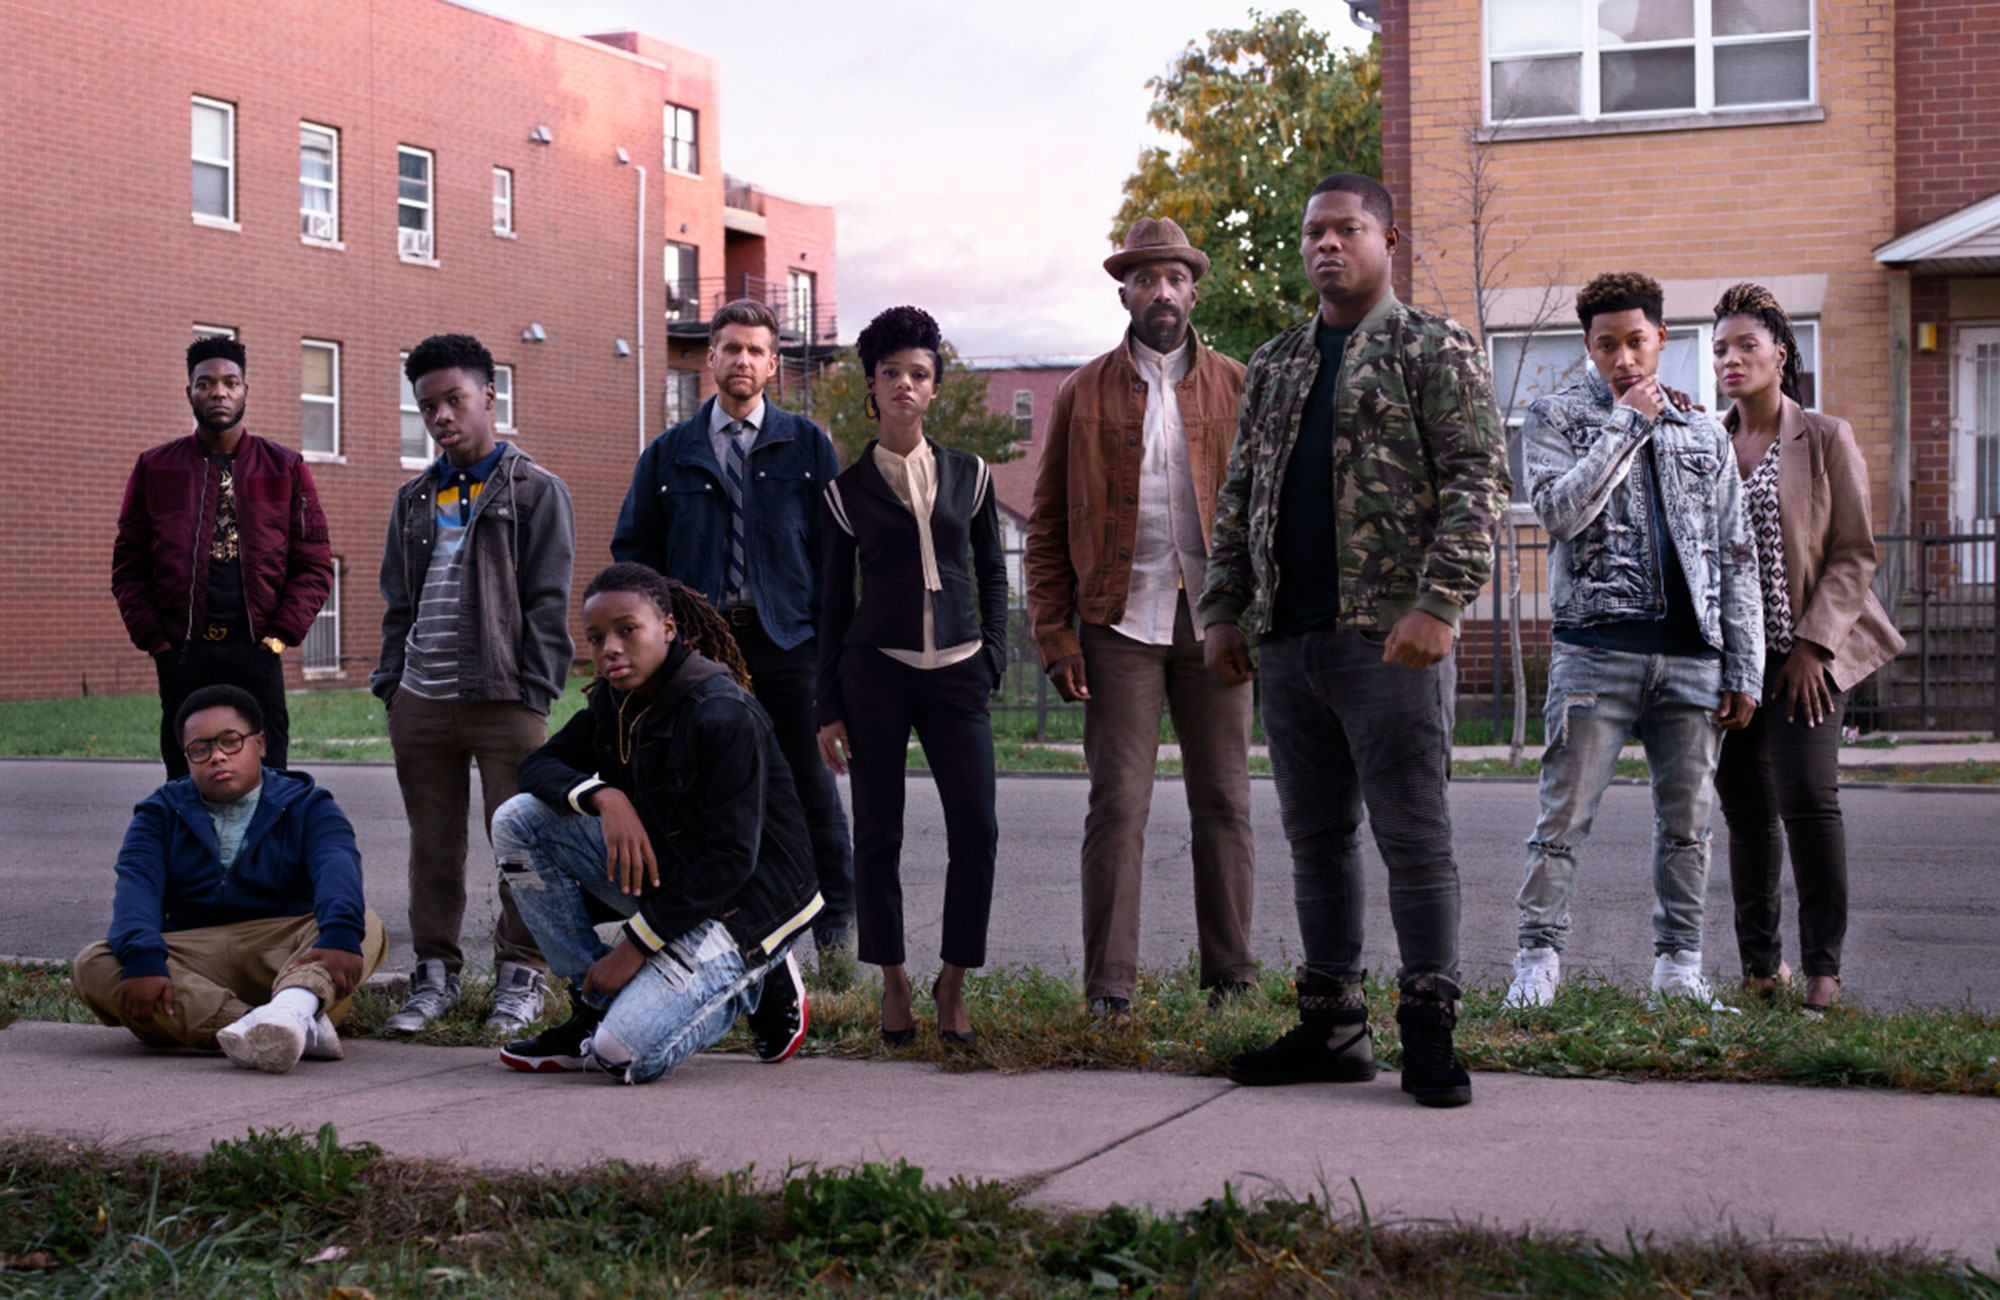 Barton Fitzpatrick as Reg, Alex R. Hibbert as Kevin, Shamon Brown Jr. as Papa, Michael Epps as Jake, Armando Riesco as Detective Cruz, Tiffany Boone as Jerrika, Ntare Guma Mbaho Mwine as Ronne, Jason Mitchell as Brandon, Jacob Latimore as Emmett and Yolanda Ross as Jada in THE CHI - Lena Waithe 's Showtime drama returns following Jason Mitchell 's Brandon as he tries to get his food truck business up and running while balancing his relationship with Tiffany Boone 's Jerrika. (Sunday, April 7, 10 p.m. ET)